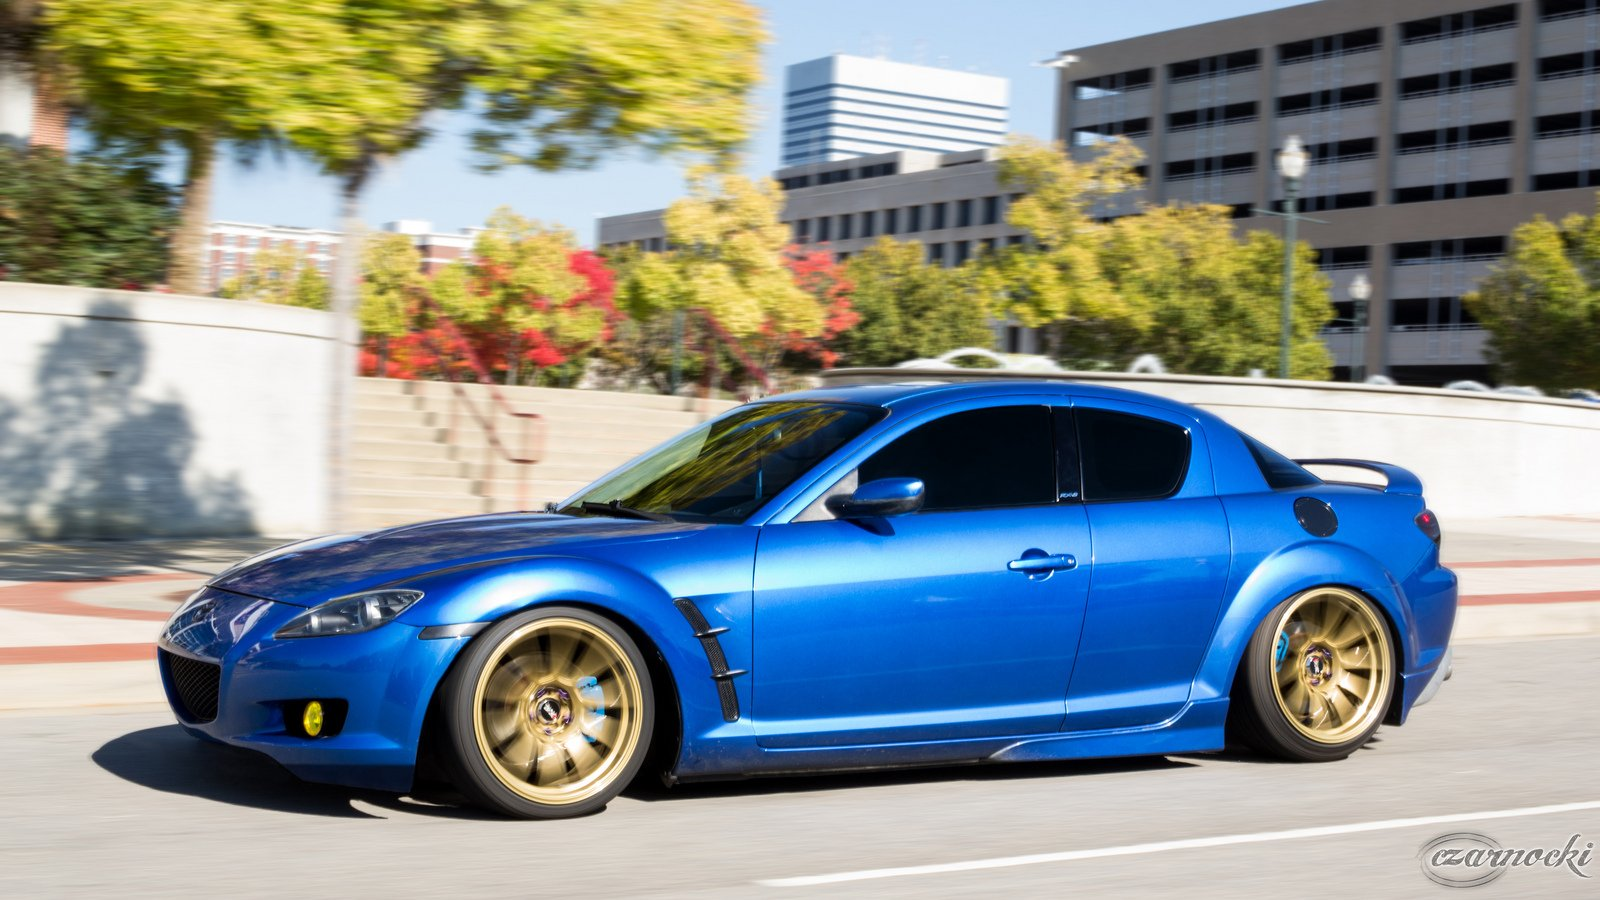 mazda rx8 coupe tuning japan body kit cars wallpaper 1600x900 498748 wallpaperup. Black Bedroom Furniture Sets. Home Design Ideas